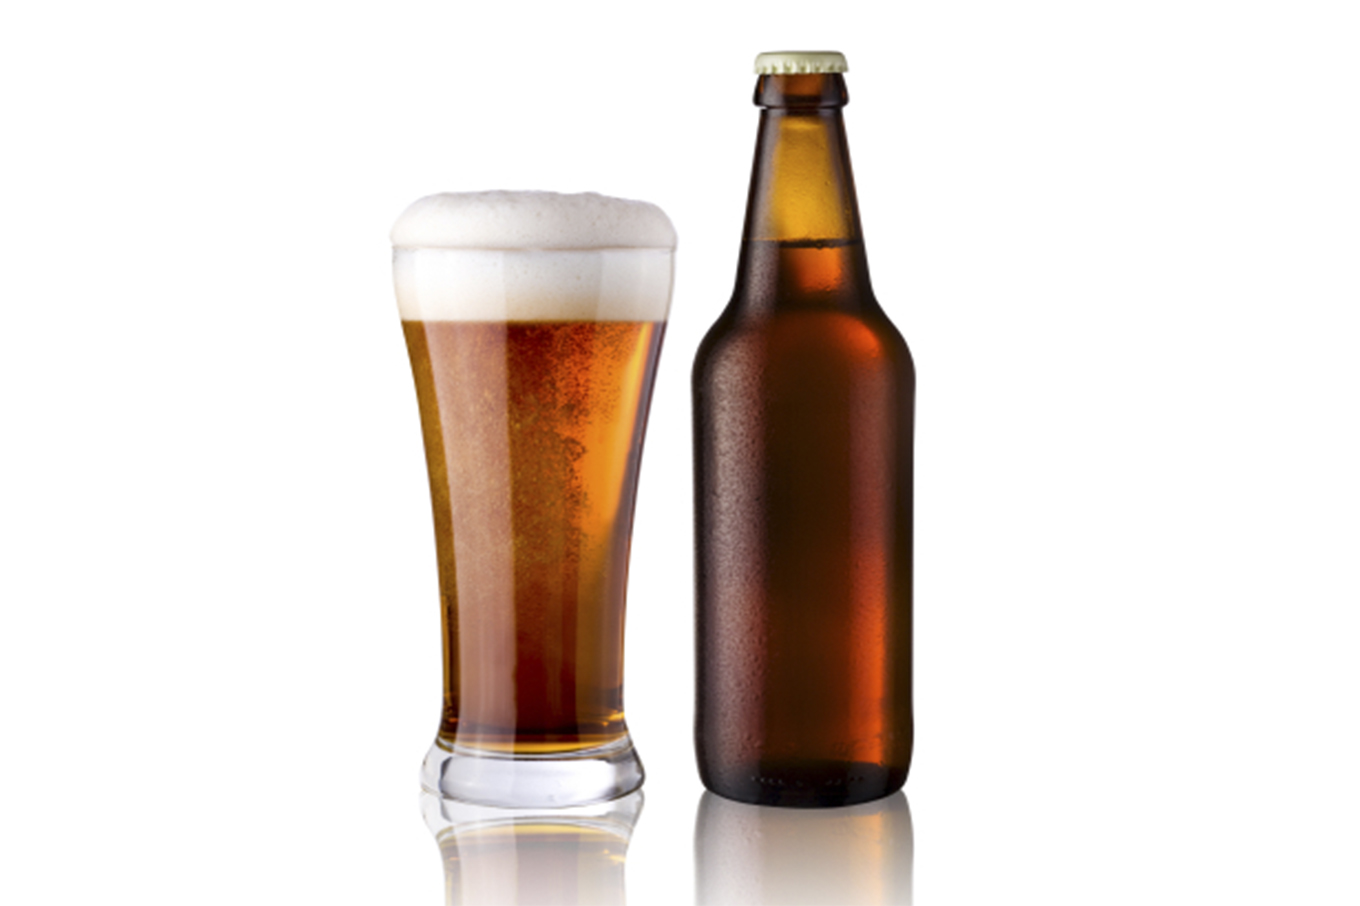 Gluten-Free Beer: A Tasty and Healthy Option?